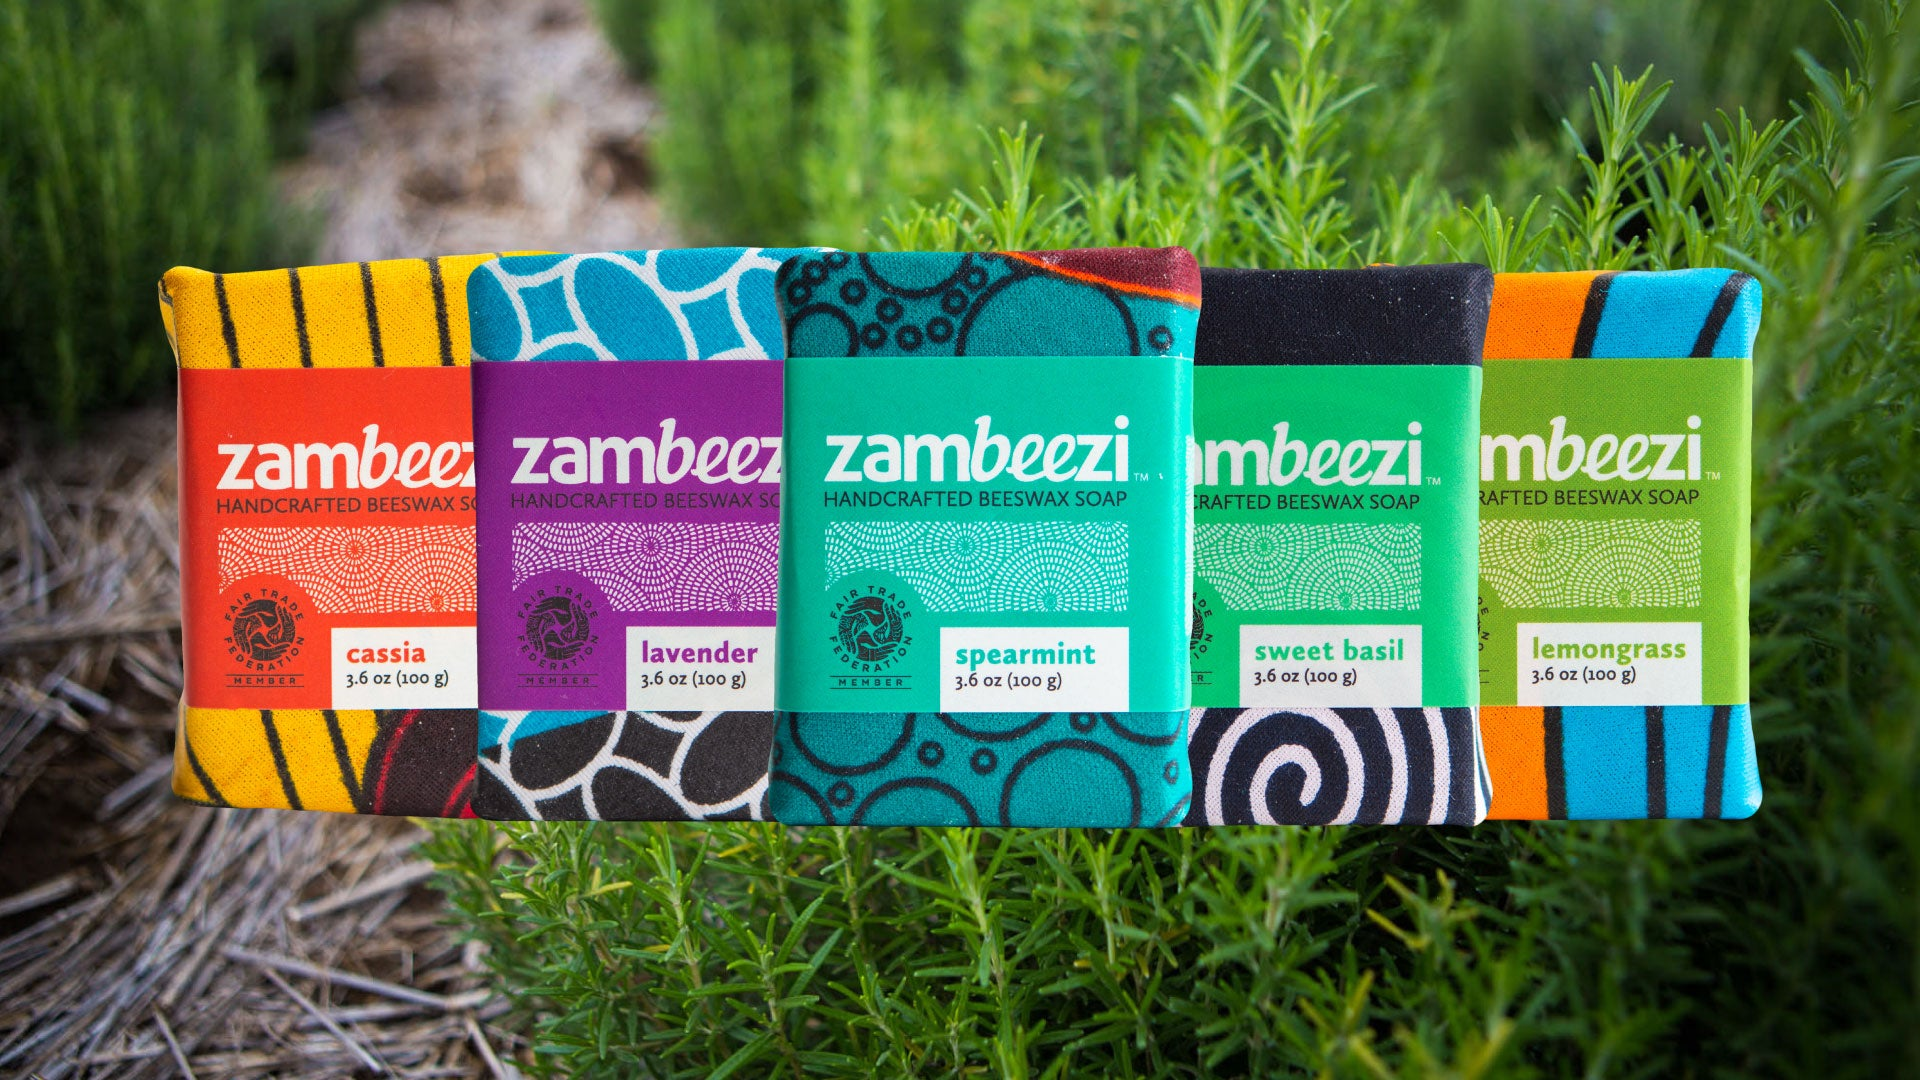 Zambeezi Fair Trade, hand made beeswax soap is crafted from sustainable palm kernel oil